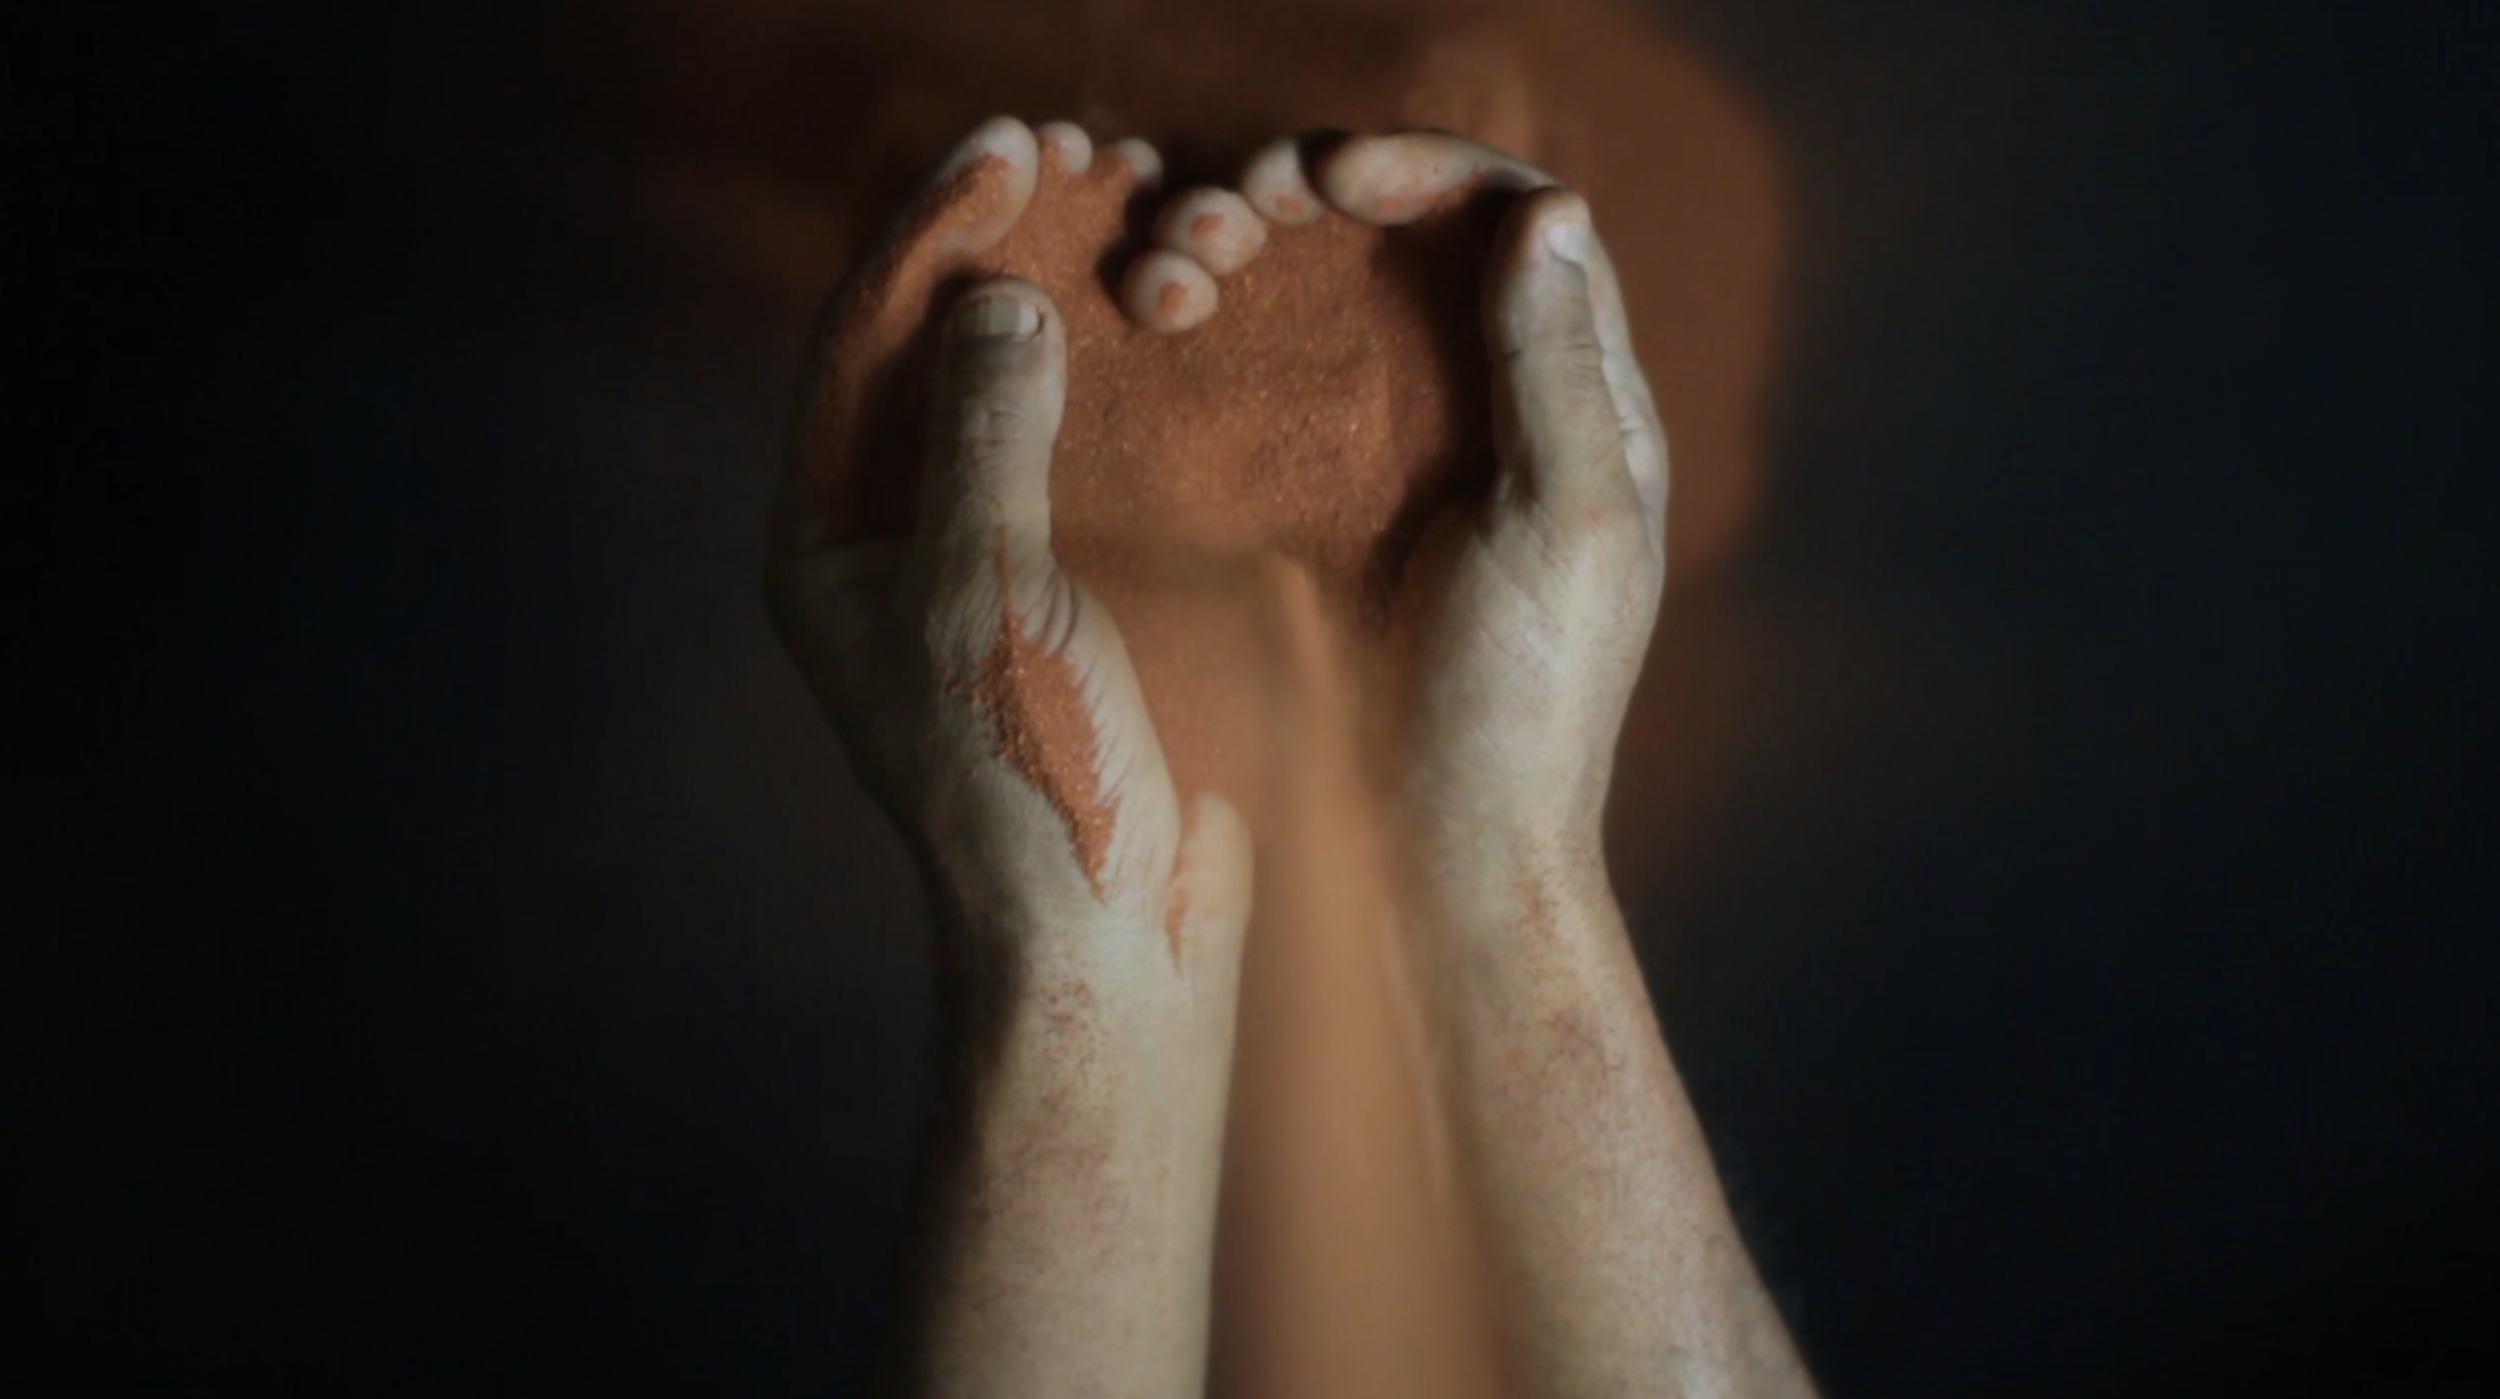 Robert Fielding,  In Our Hands,  2016. High definition video (Ed.5). Duration 1:50 (video still). Courtesy the artist.